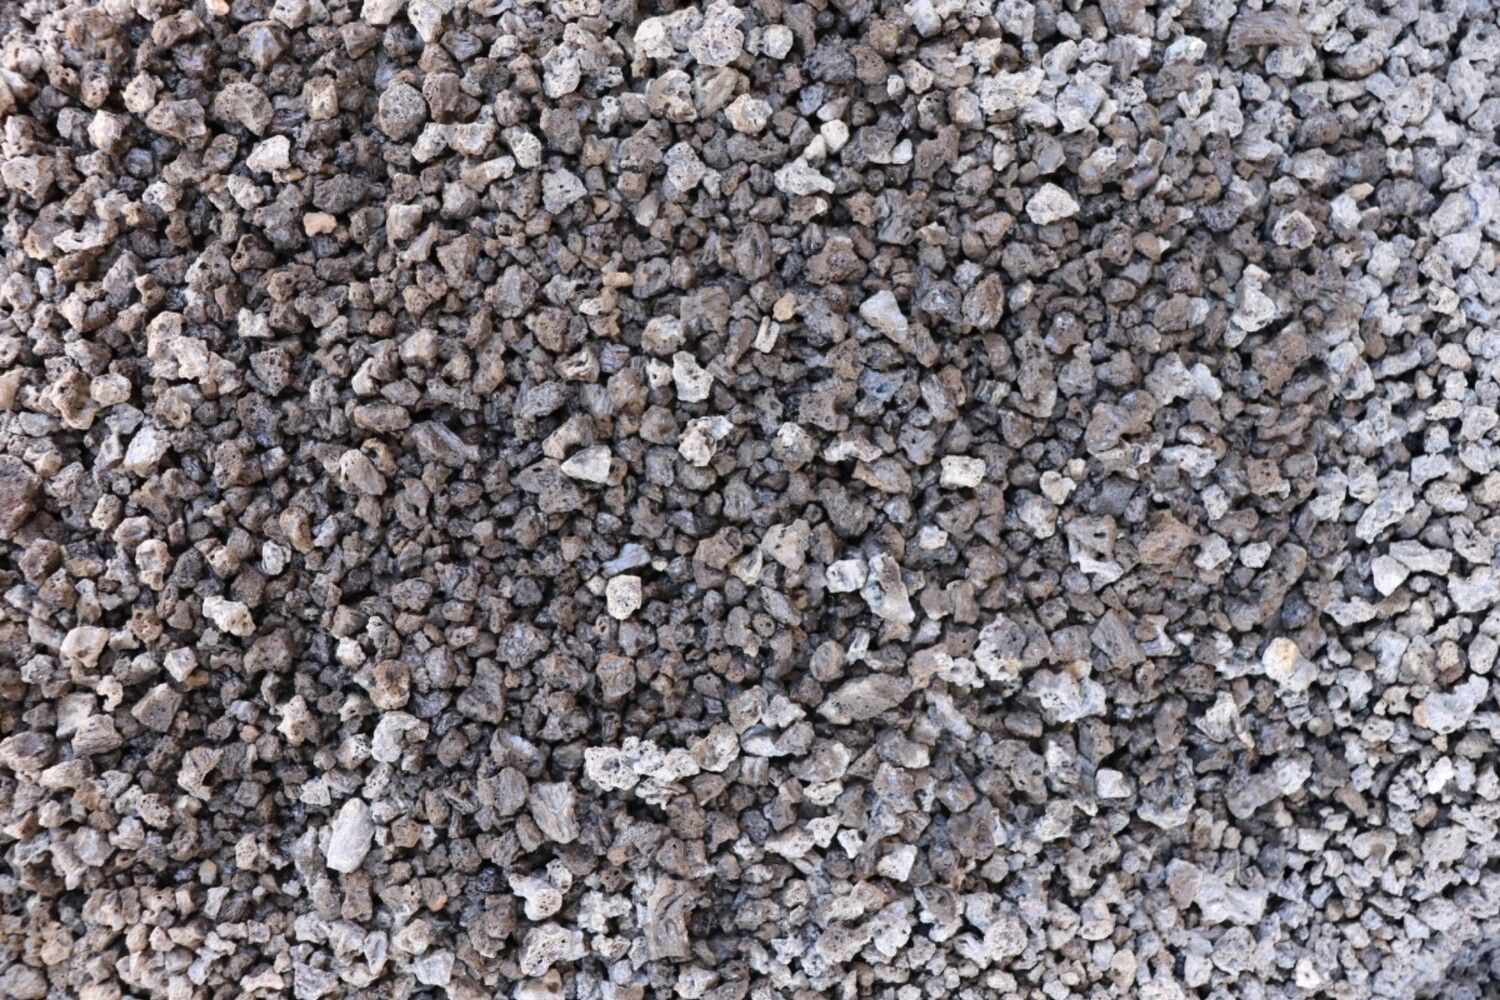 20 Lb Bag Black Volcanic Lava Rocks 1 8 Inch To 3 4 Inch Lava Rock Lava How To Dry Basil